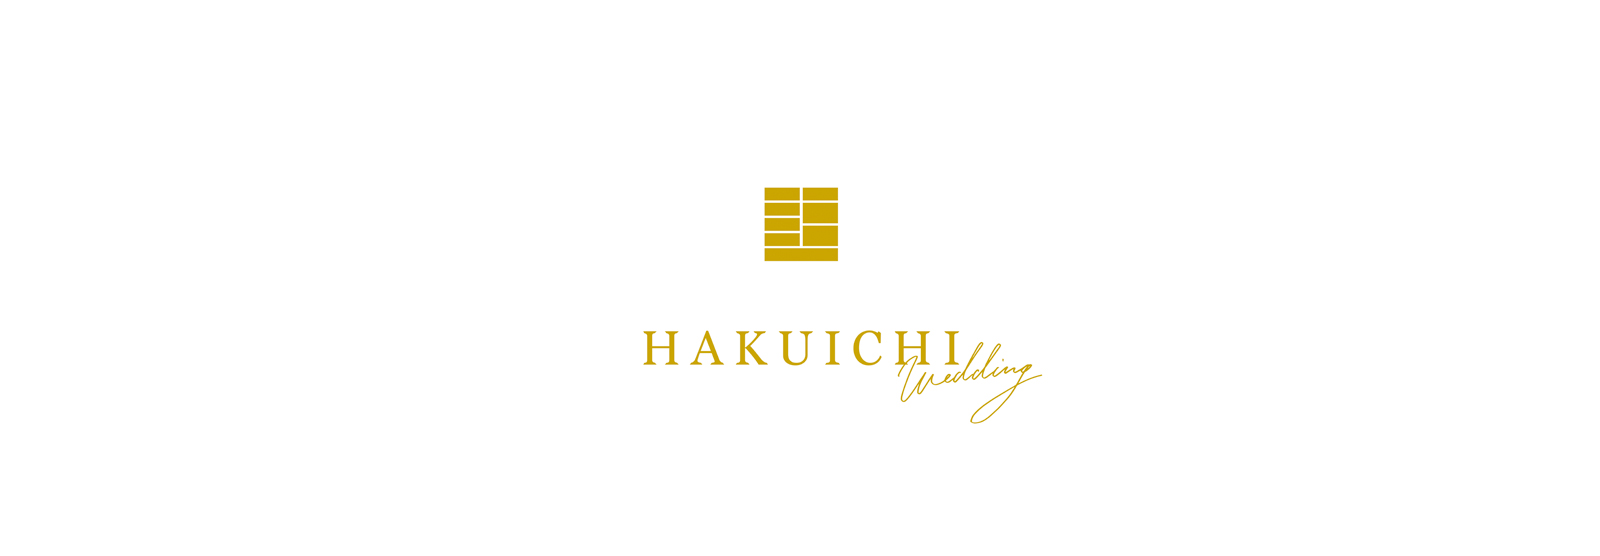 HAKUICHI Wedding